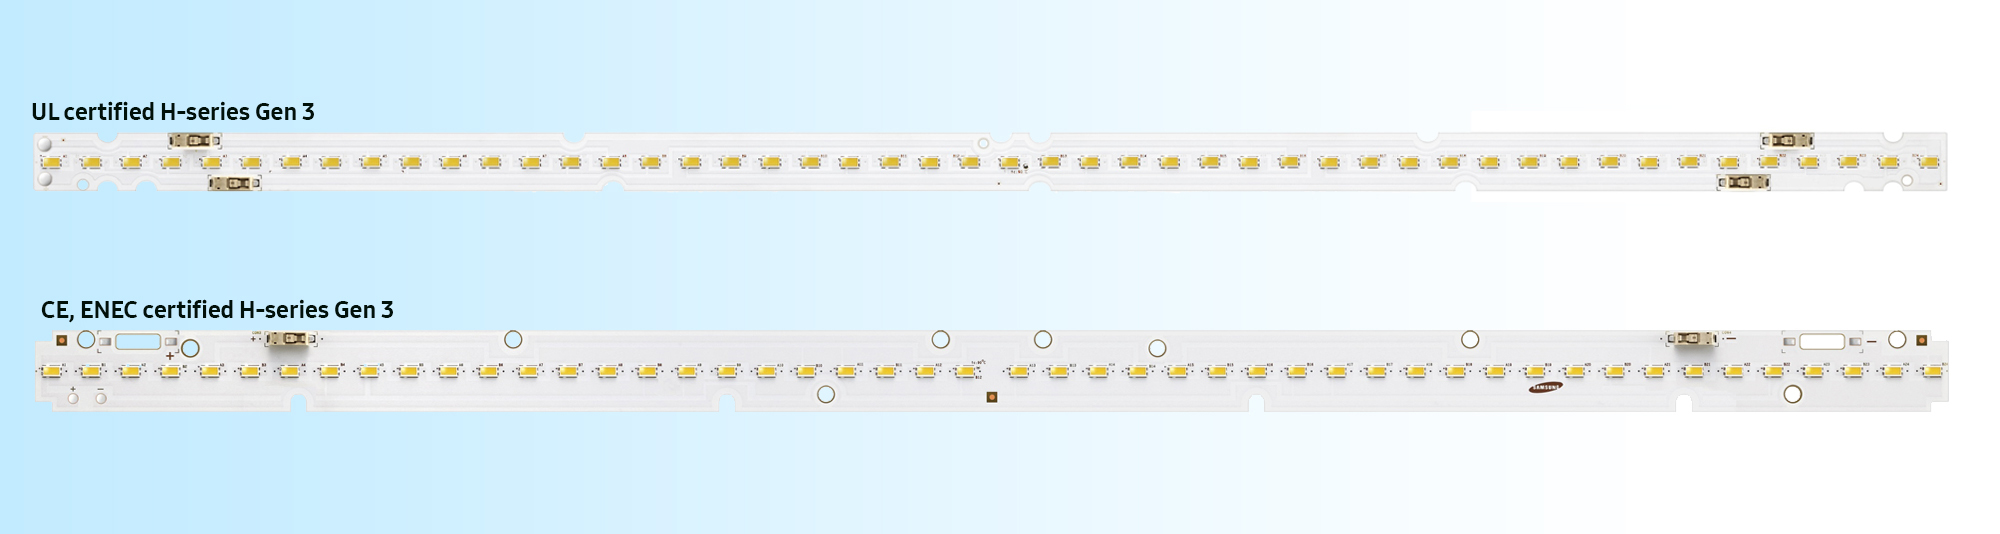 Samsung Introduces High-Performance LED Linear Modules for Indoor ...